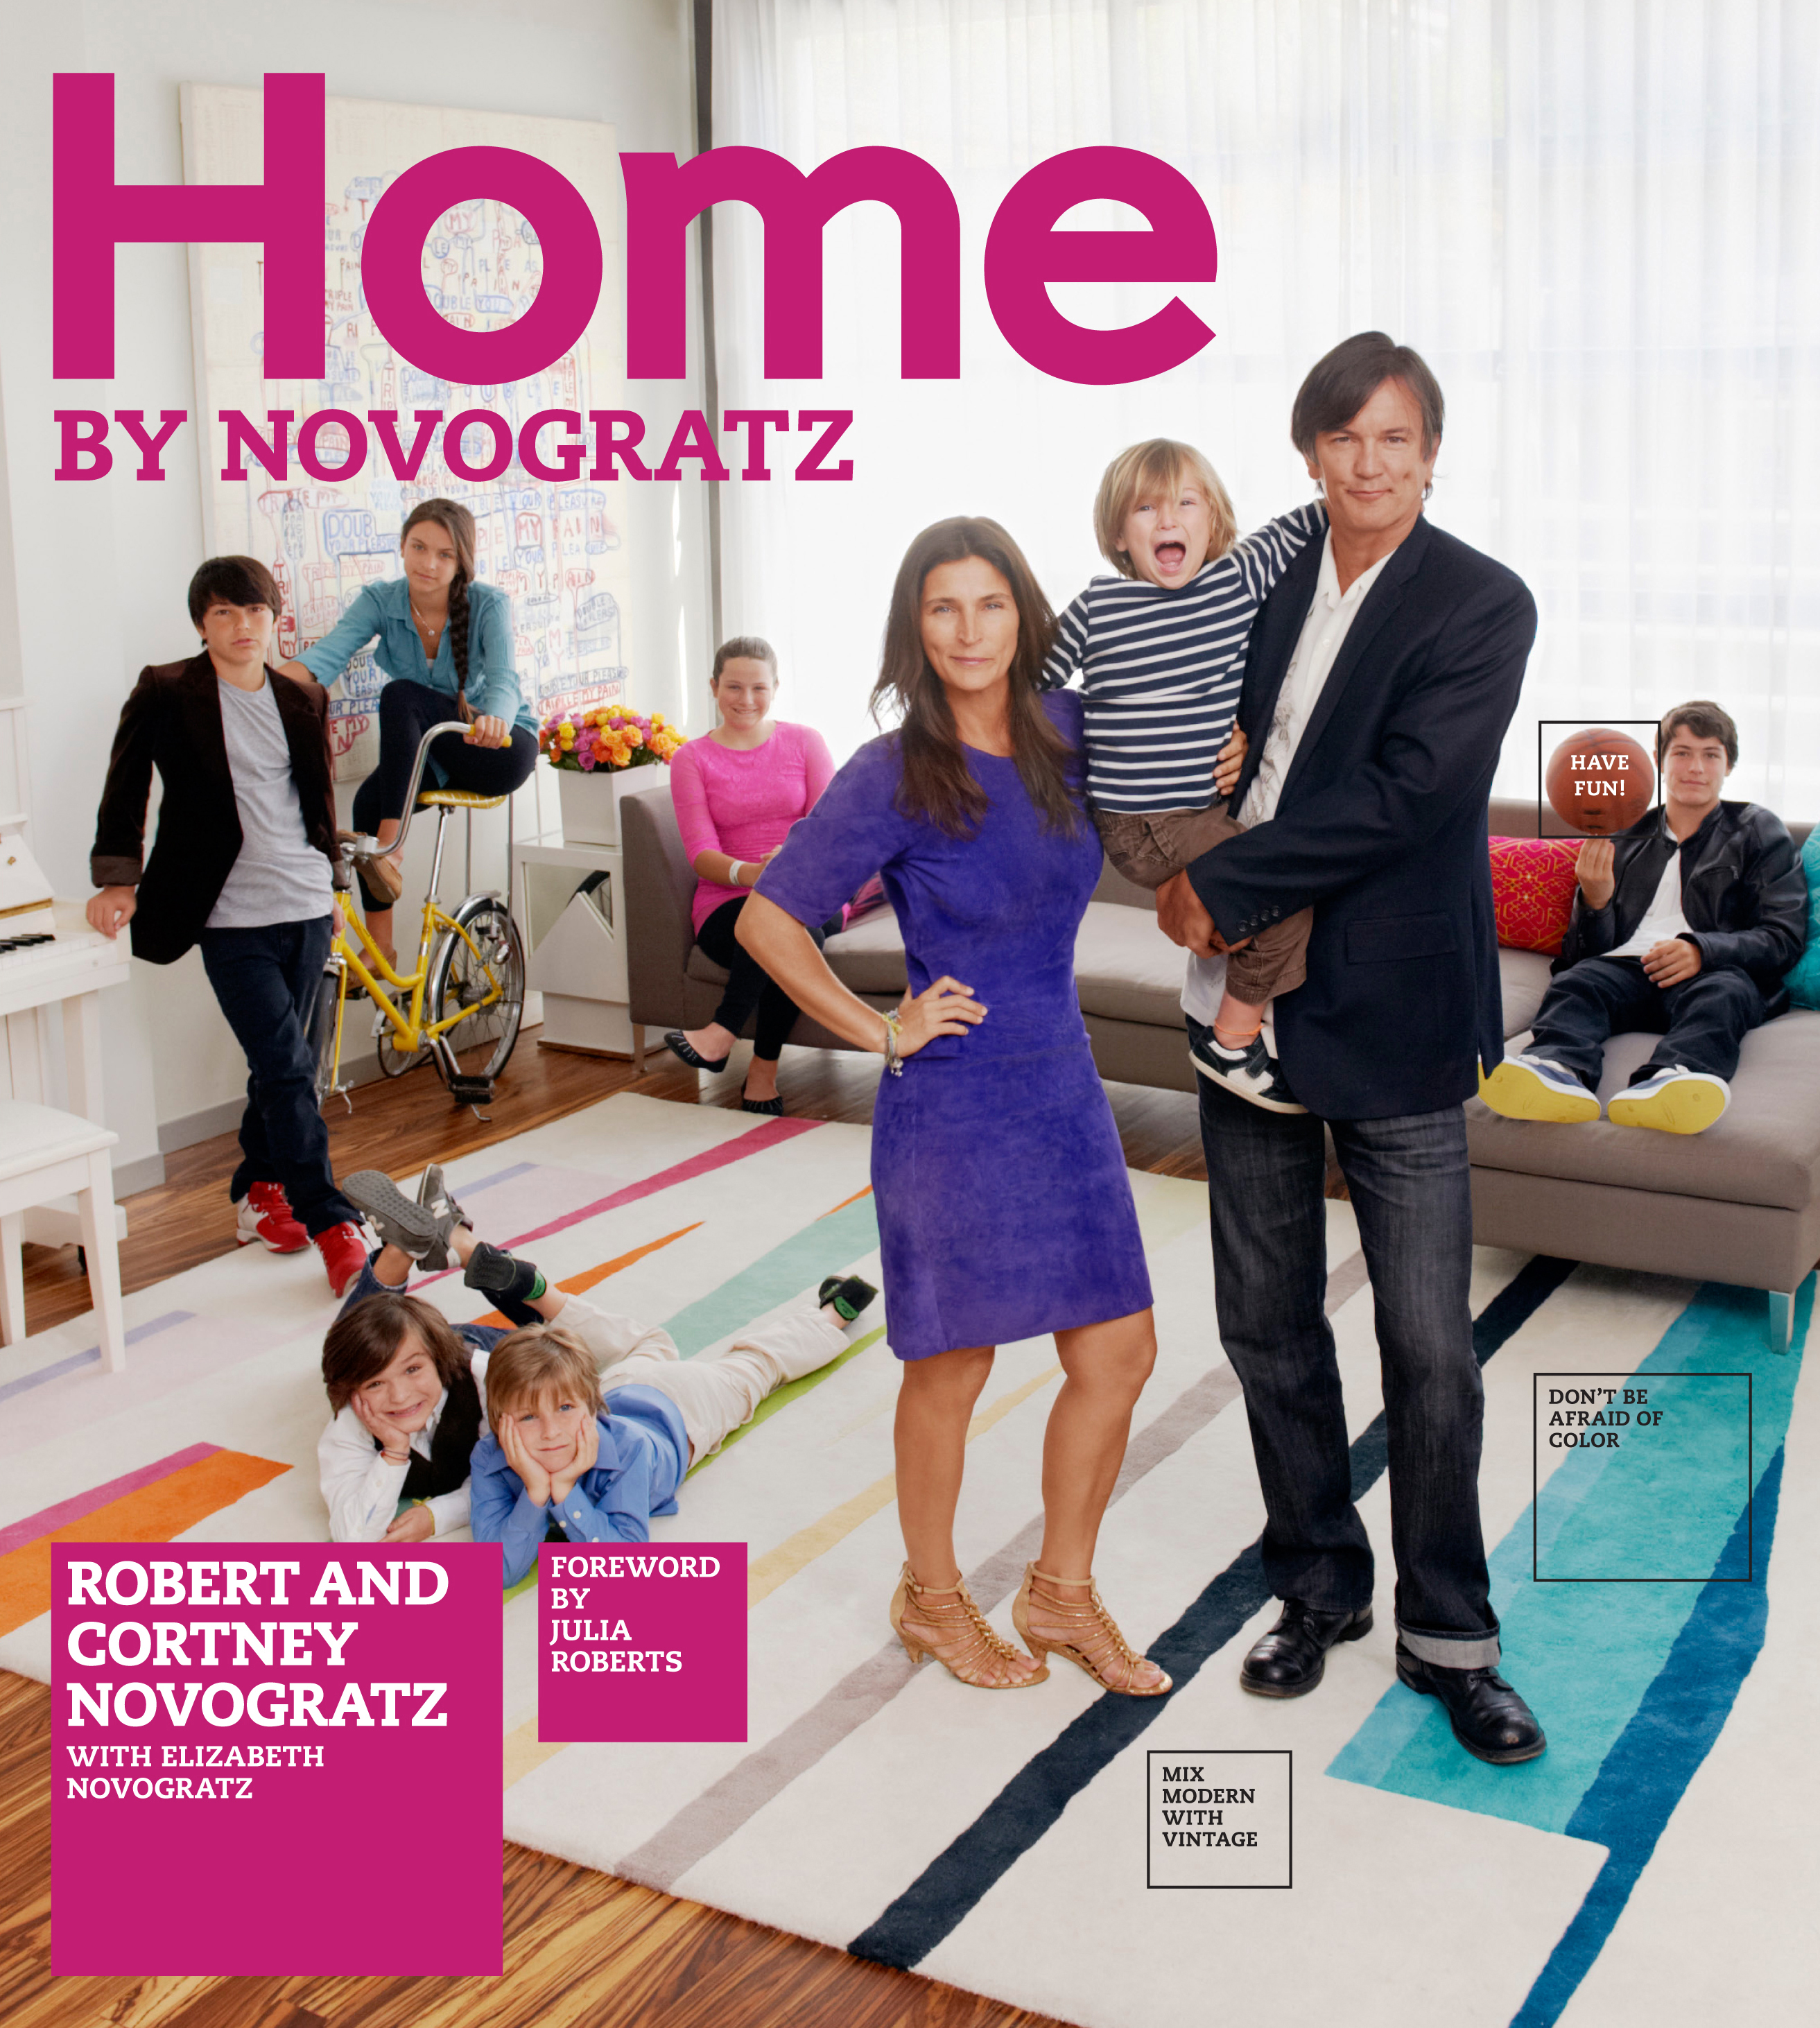 download high res image - Home By Design Magazine